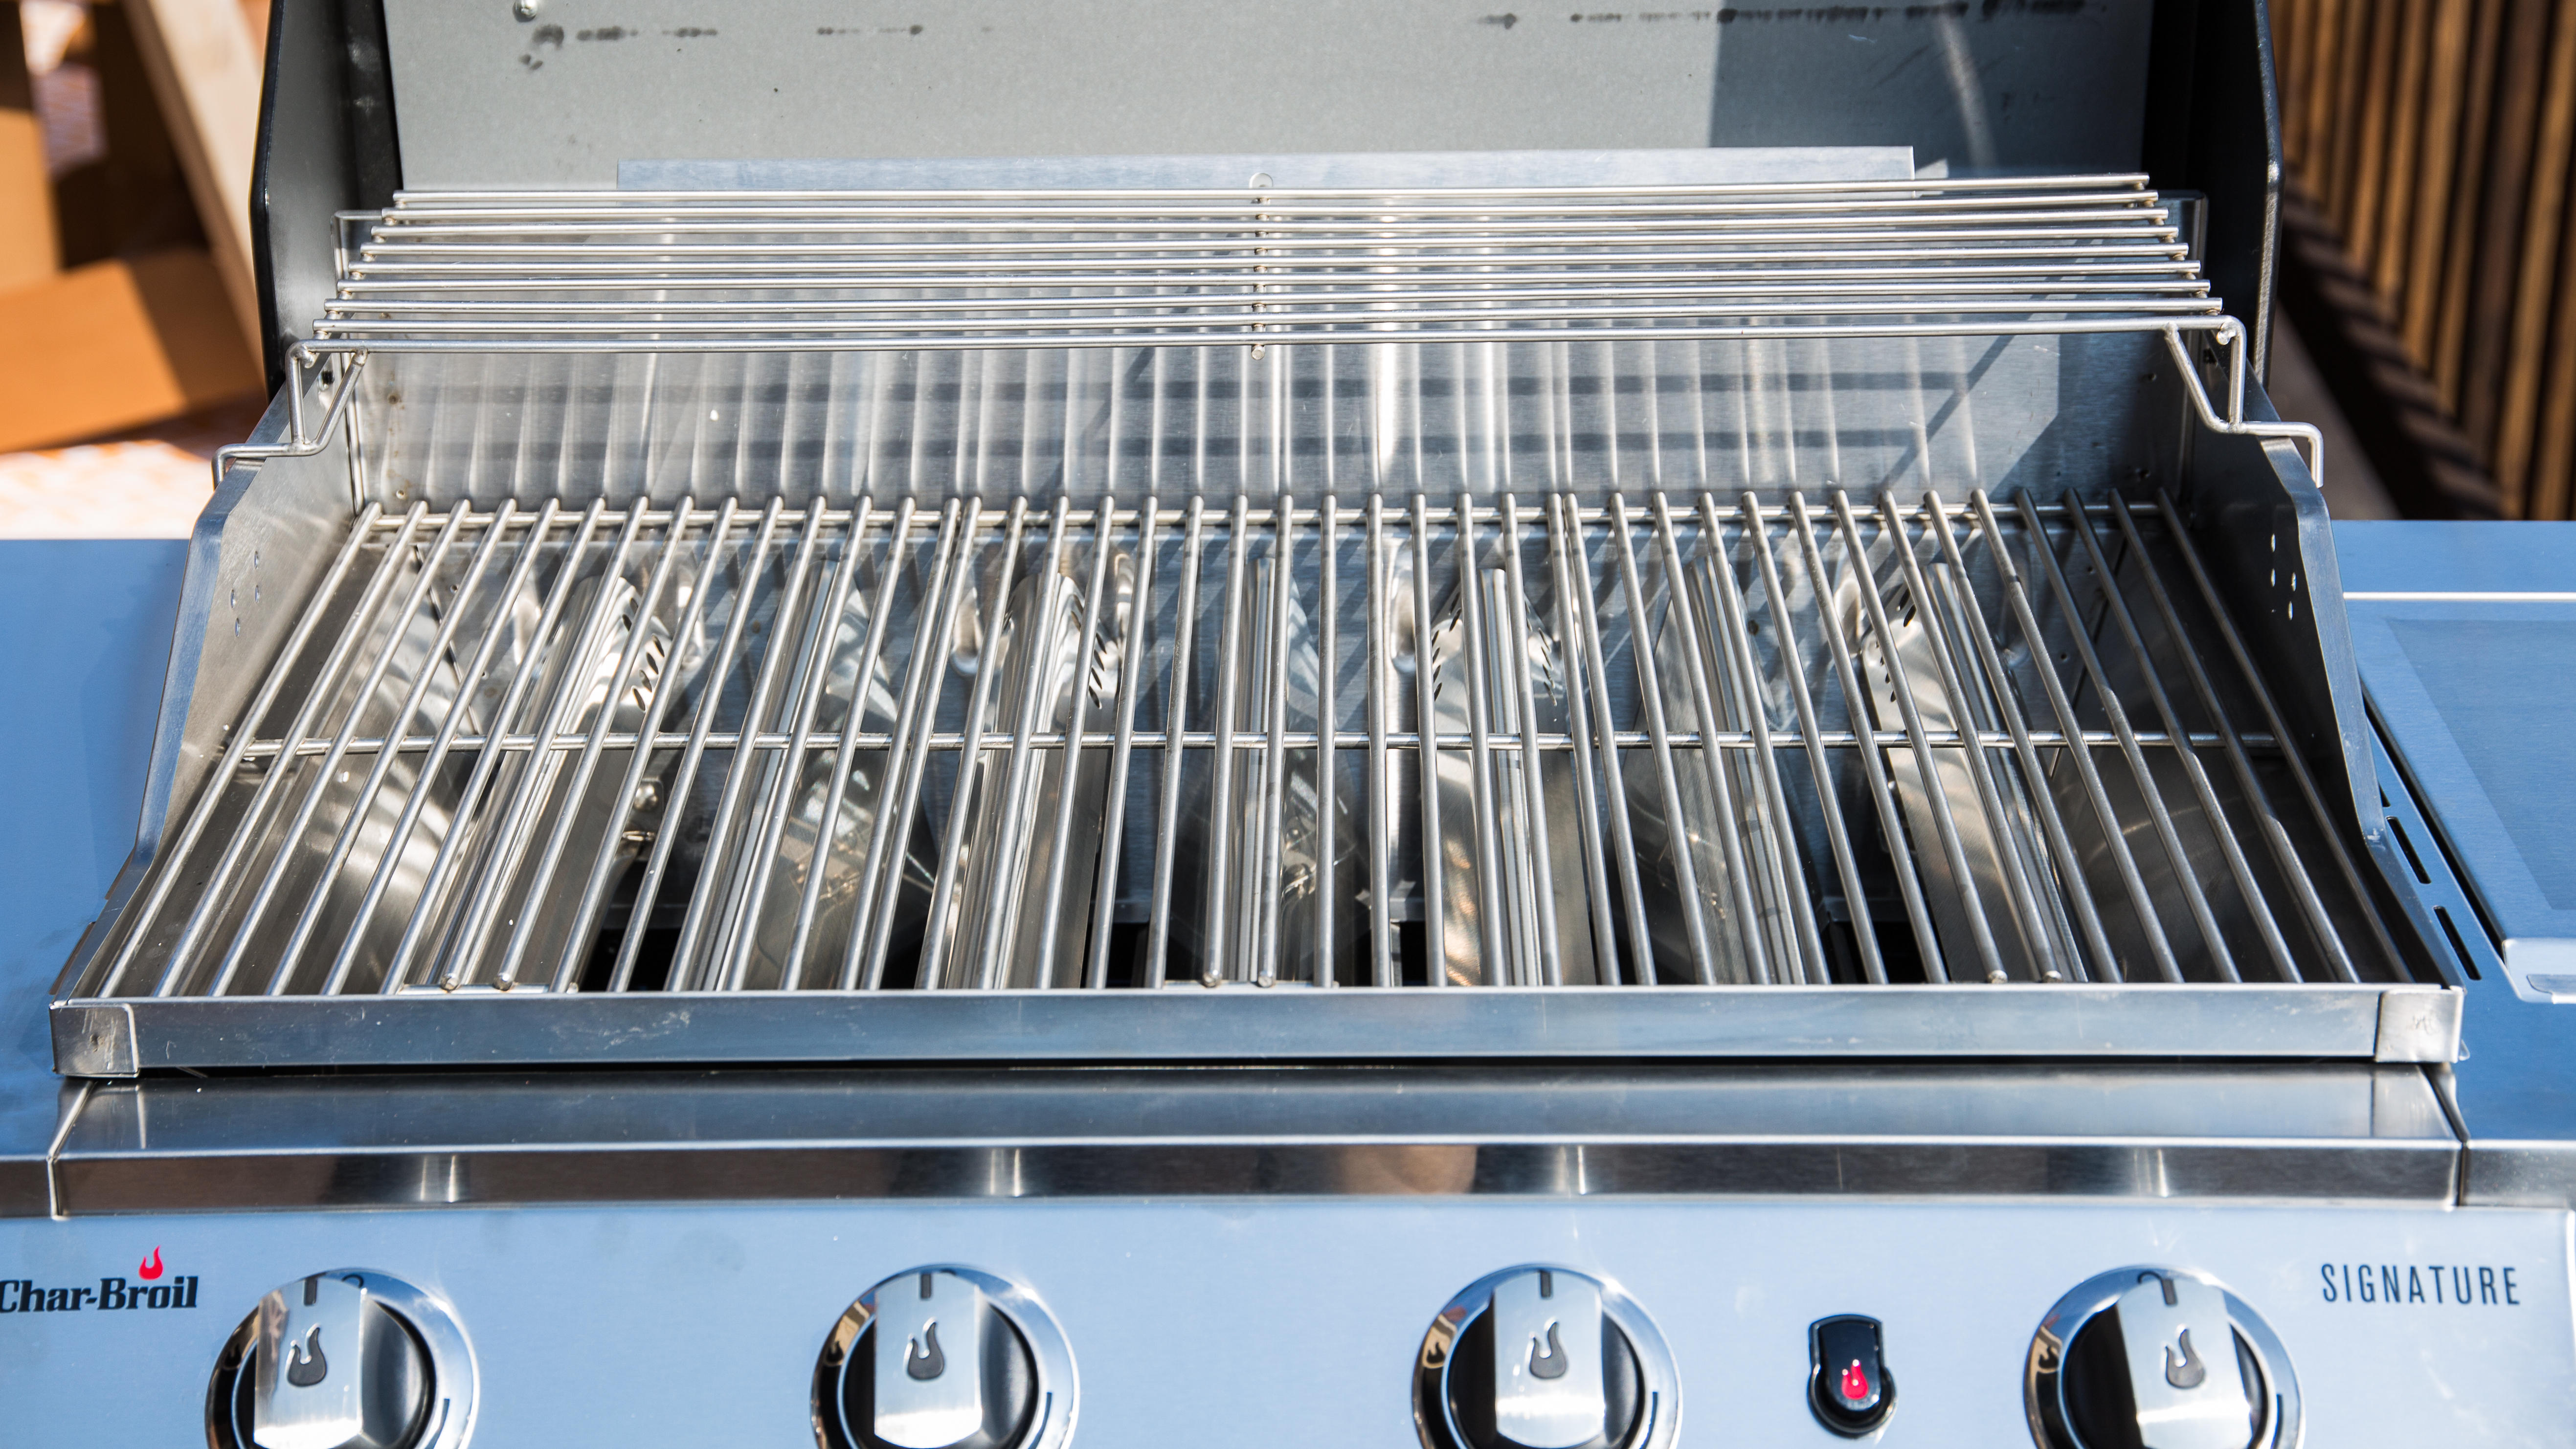 Char-Broil Signature Series 4-burner